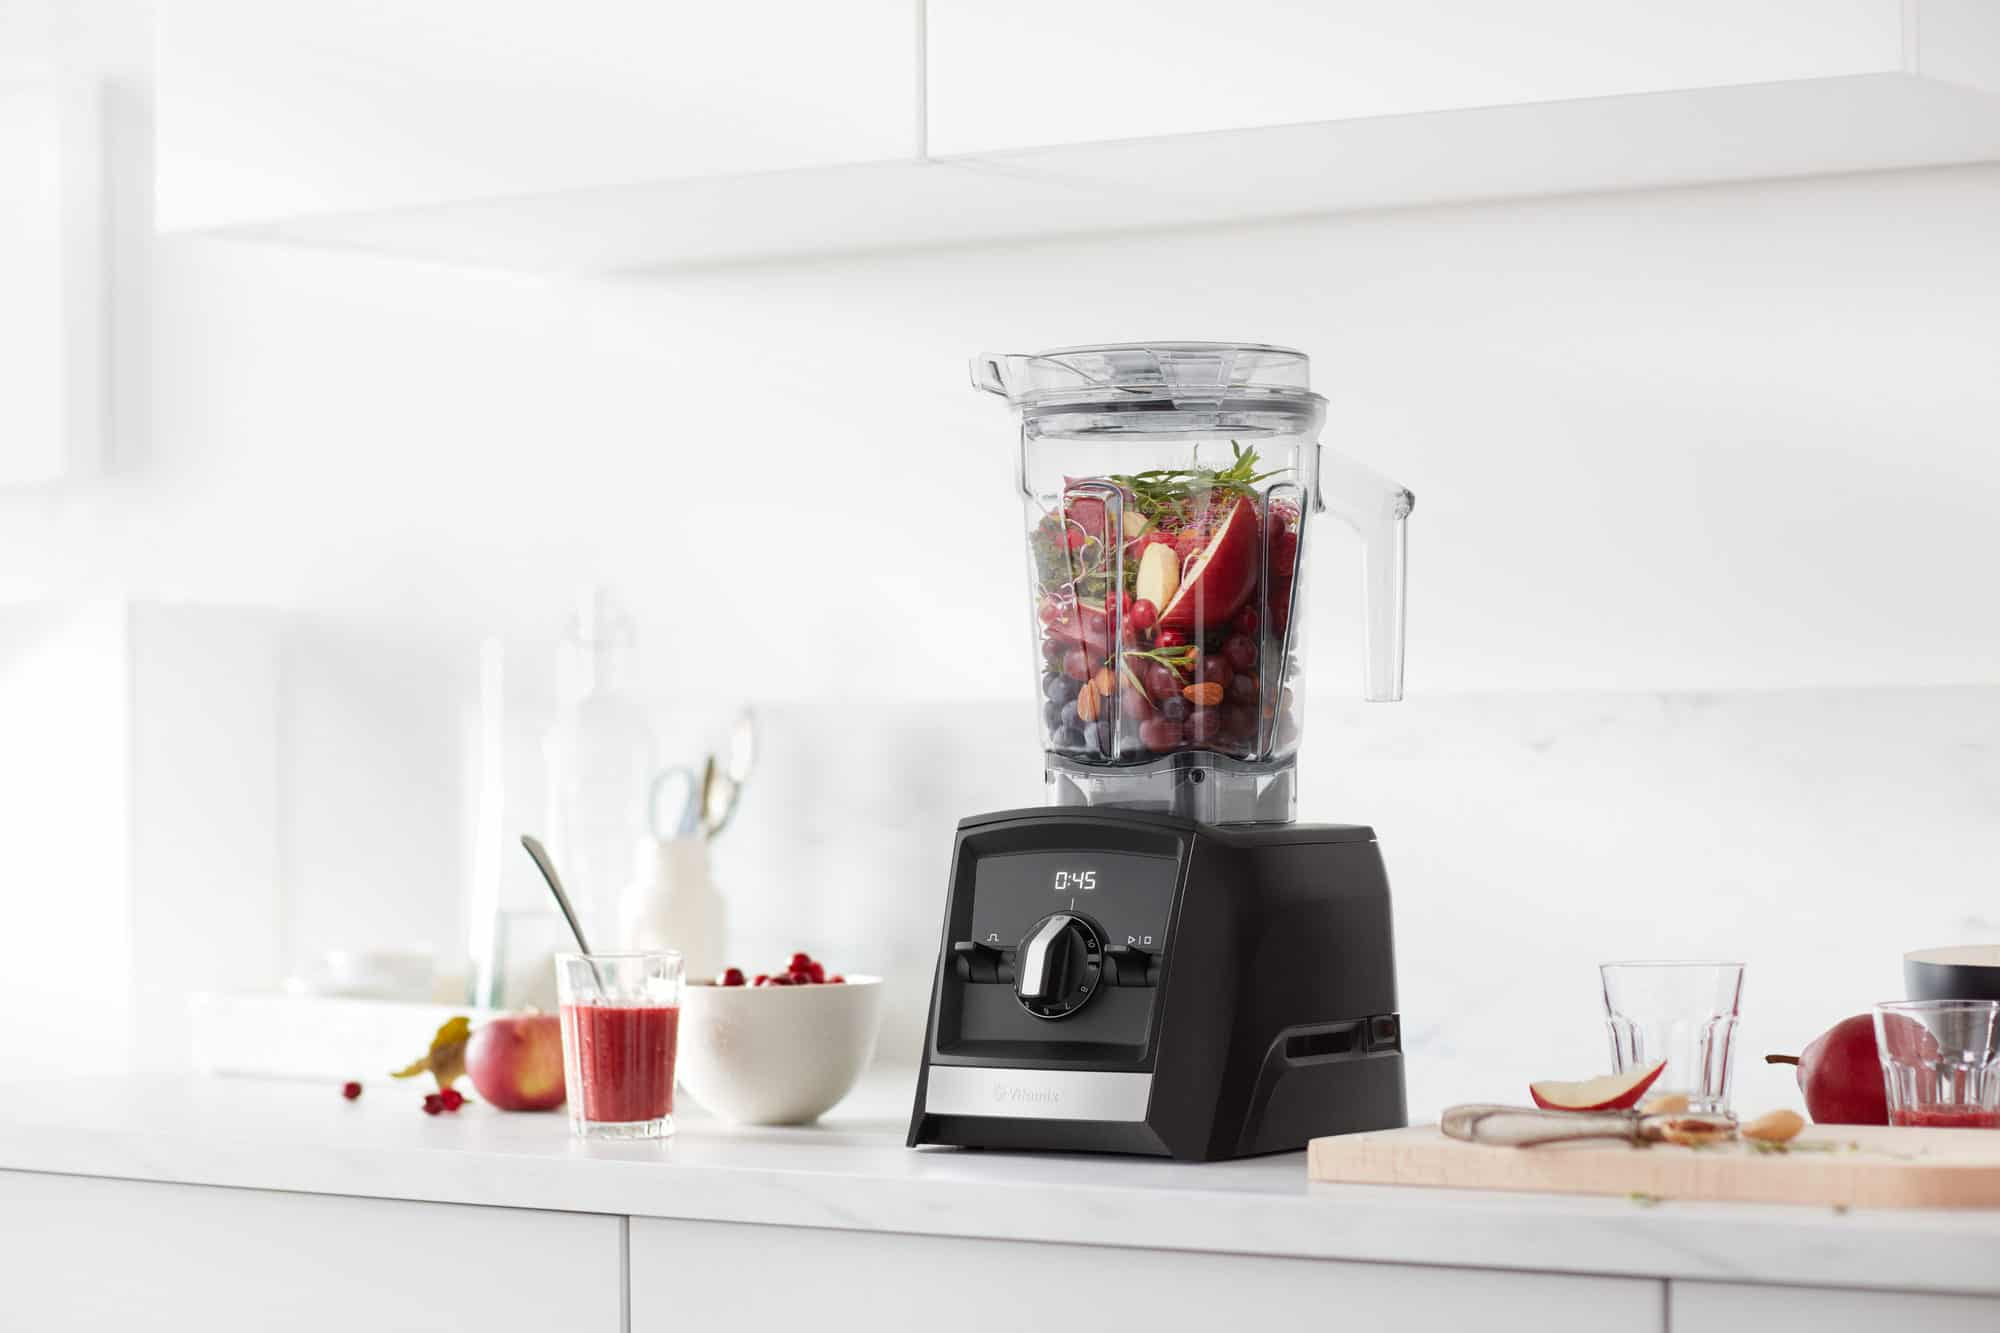 Why Does Everyone Want a Vitamix?